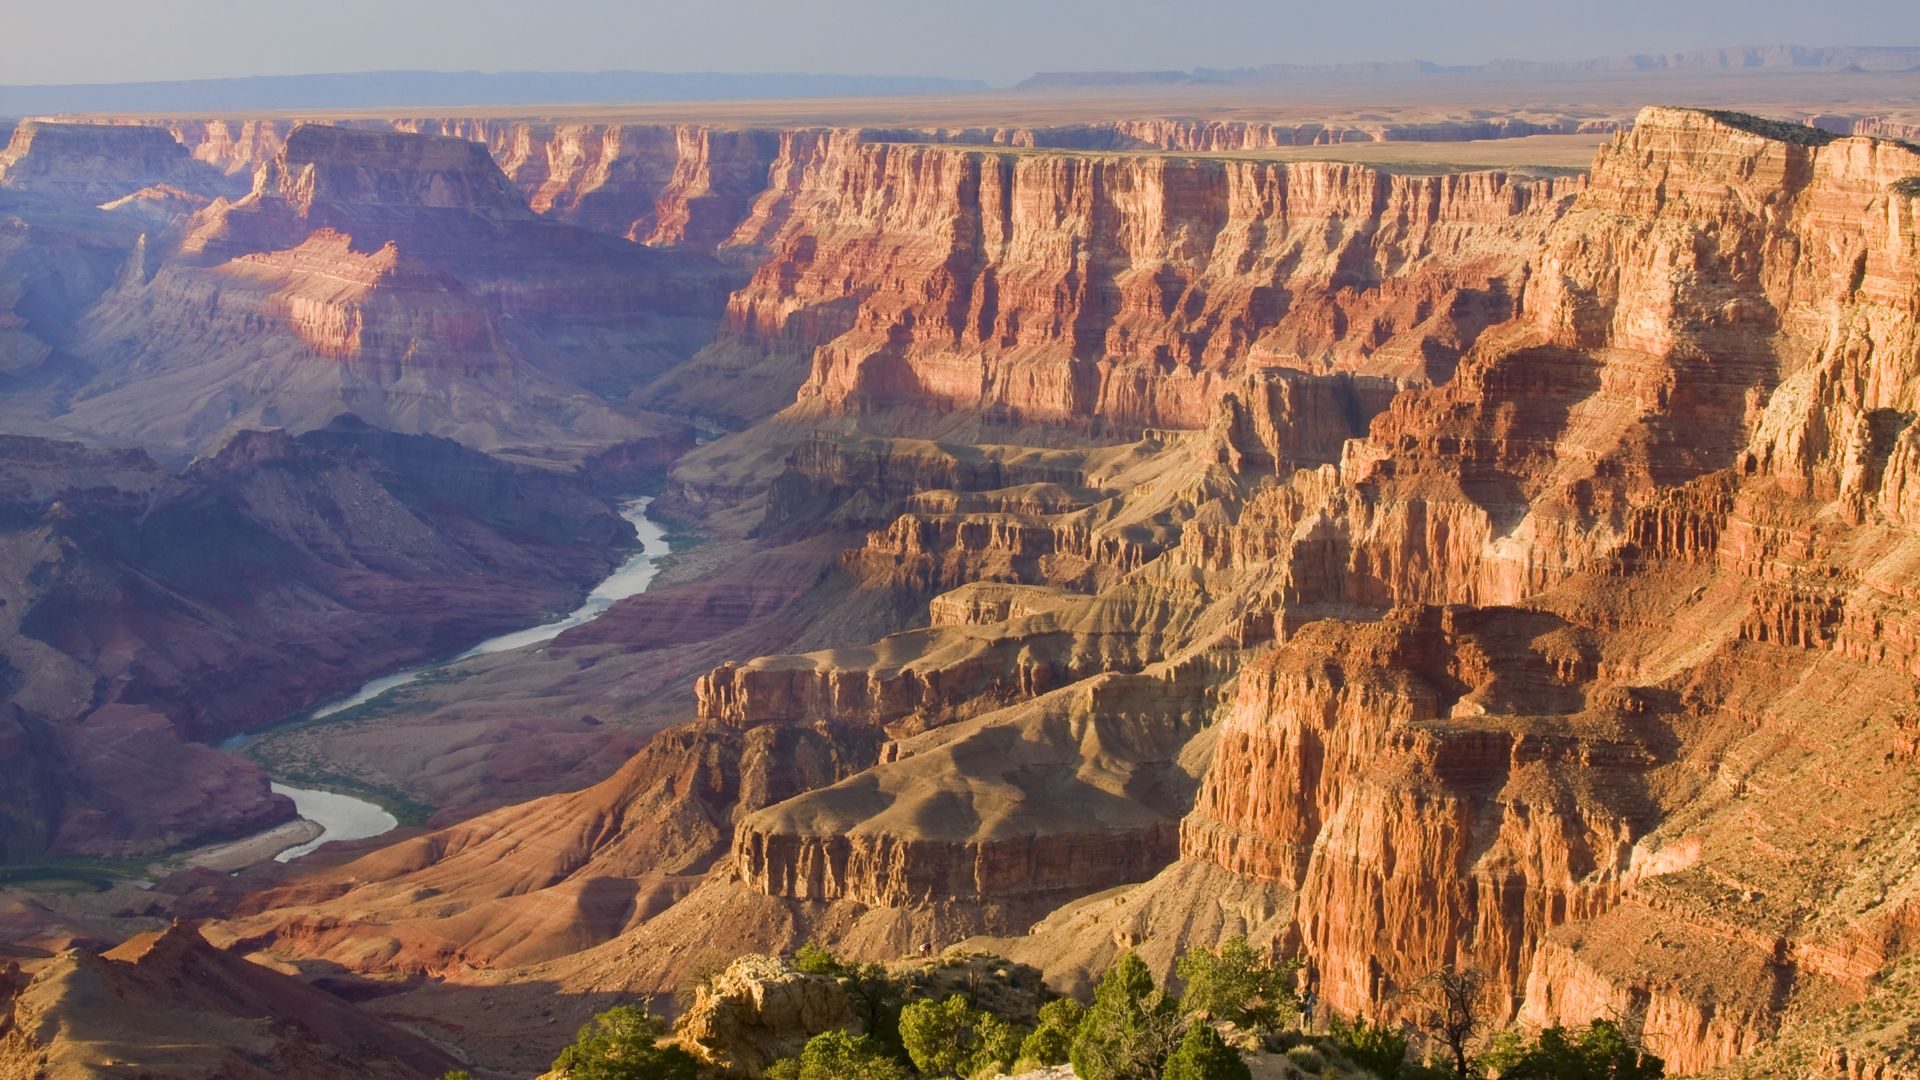 A view from the Grand Canyon National Park south rim tour